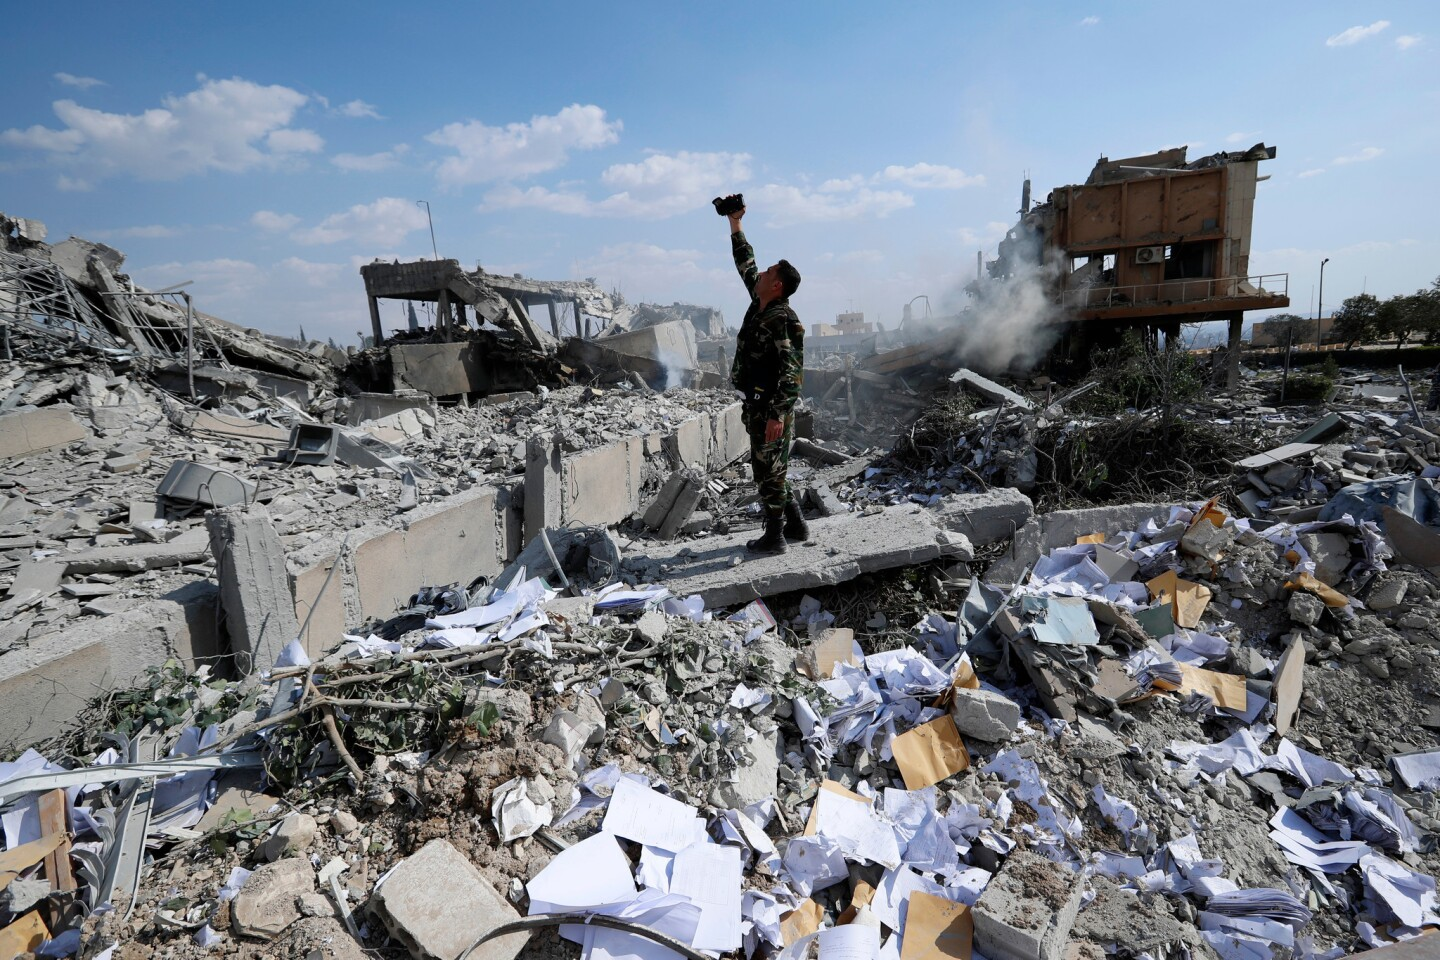 A Syrian soldier films what s left of a research center in Barzeh after U.S., French and British missiles targeted chemical facilities.